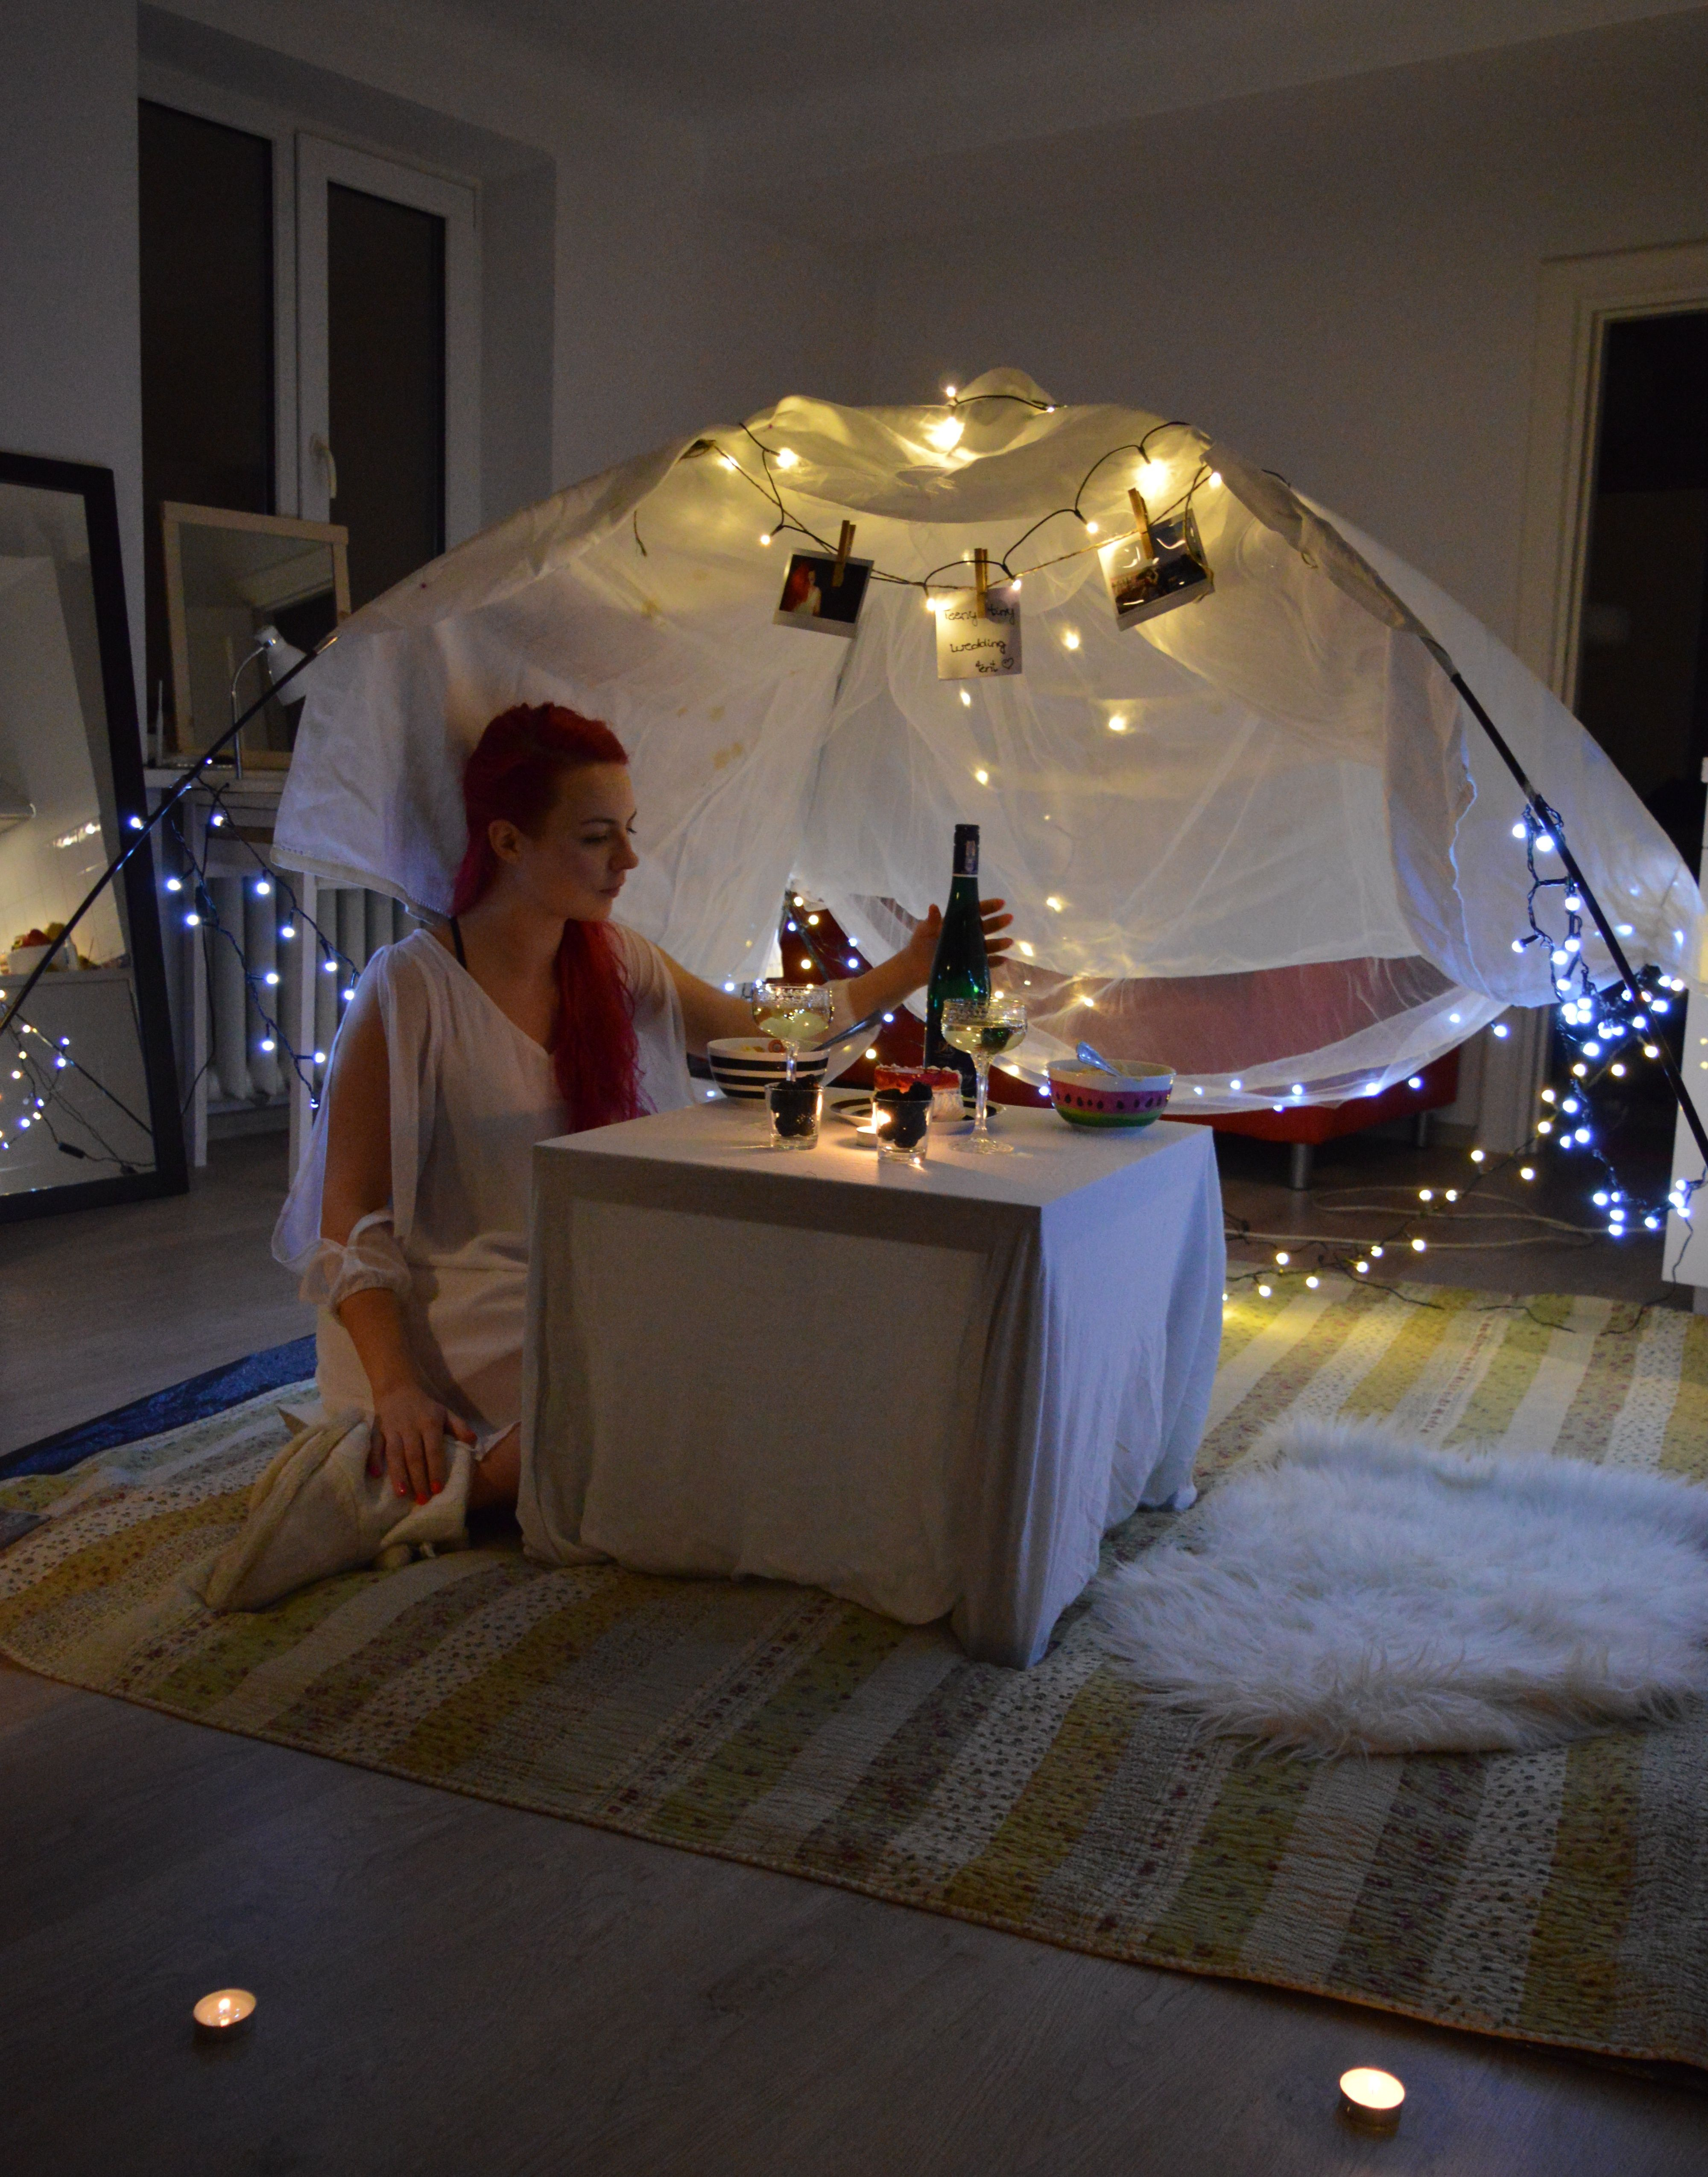 Make larger cut outs of the heart shaped paper and string then down from the ceiling to make it look even prettier. Cozy romantic surprise birthday dinner in the tent at home